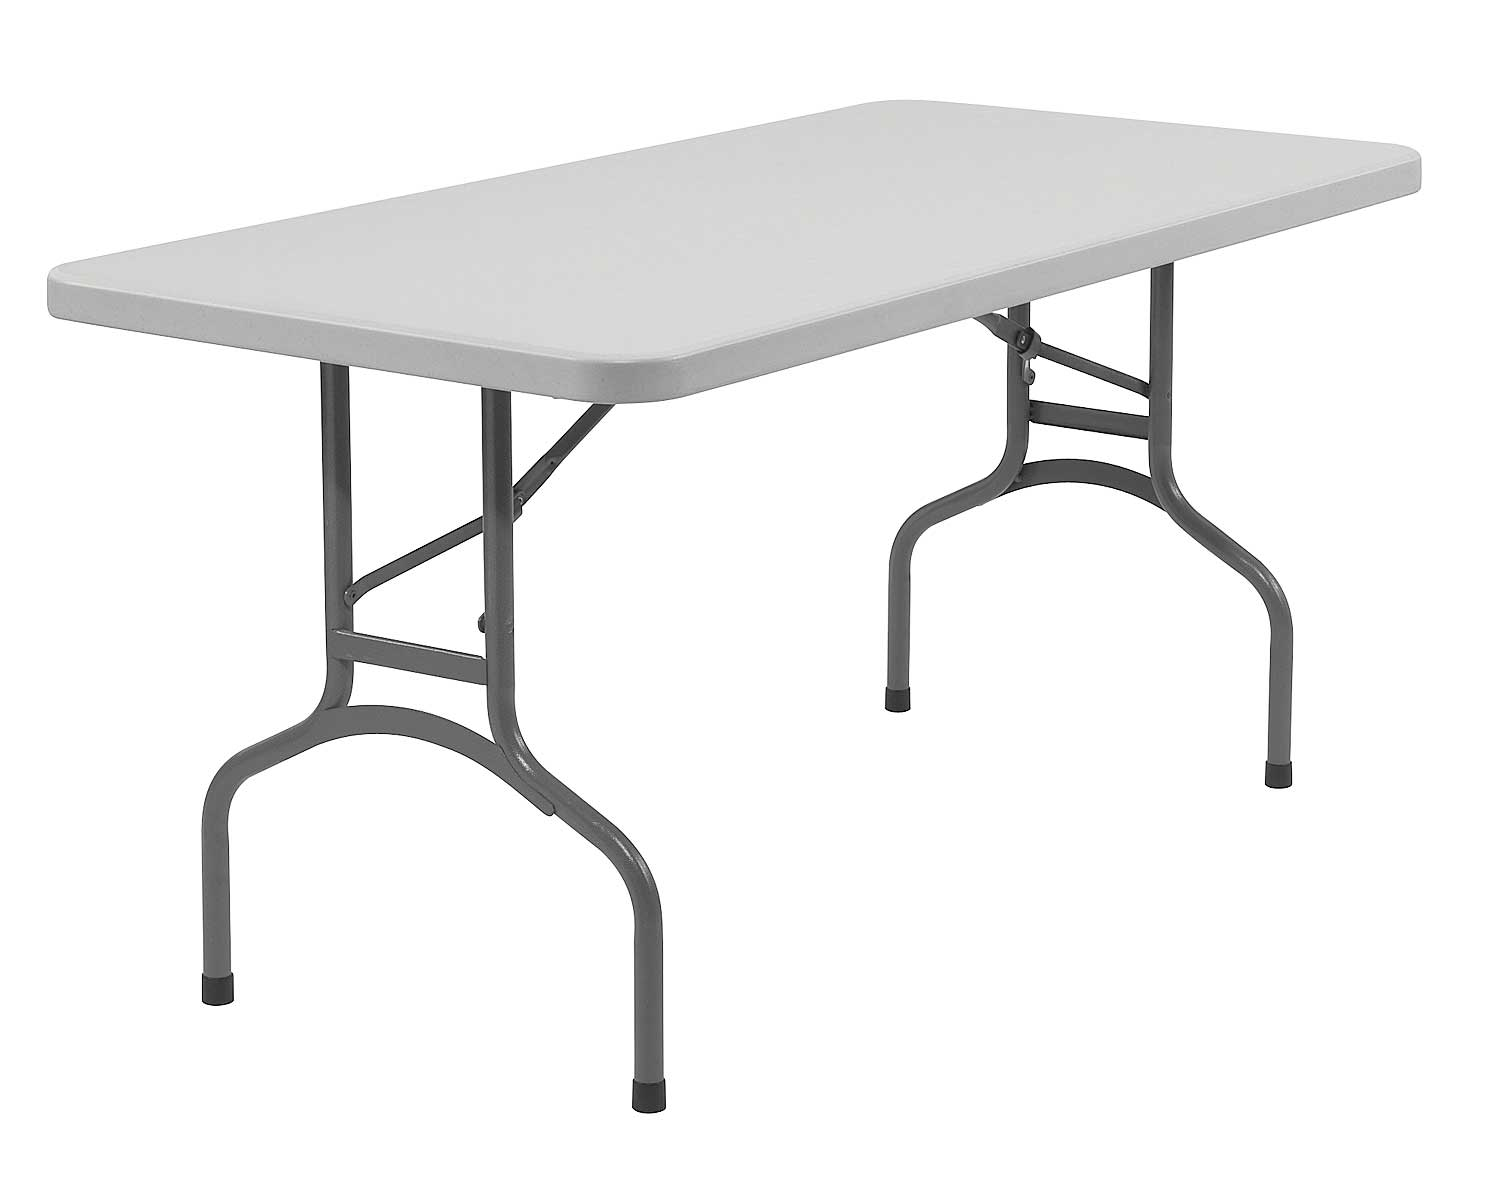 Plastic Folding Table : Plastic Folding Table to Enhance Your Outdoor Activities